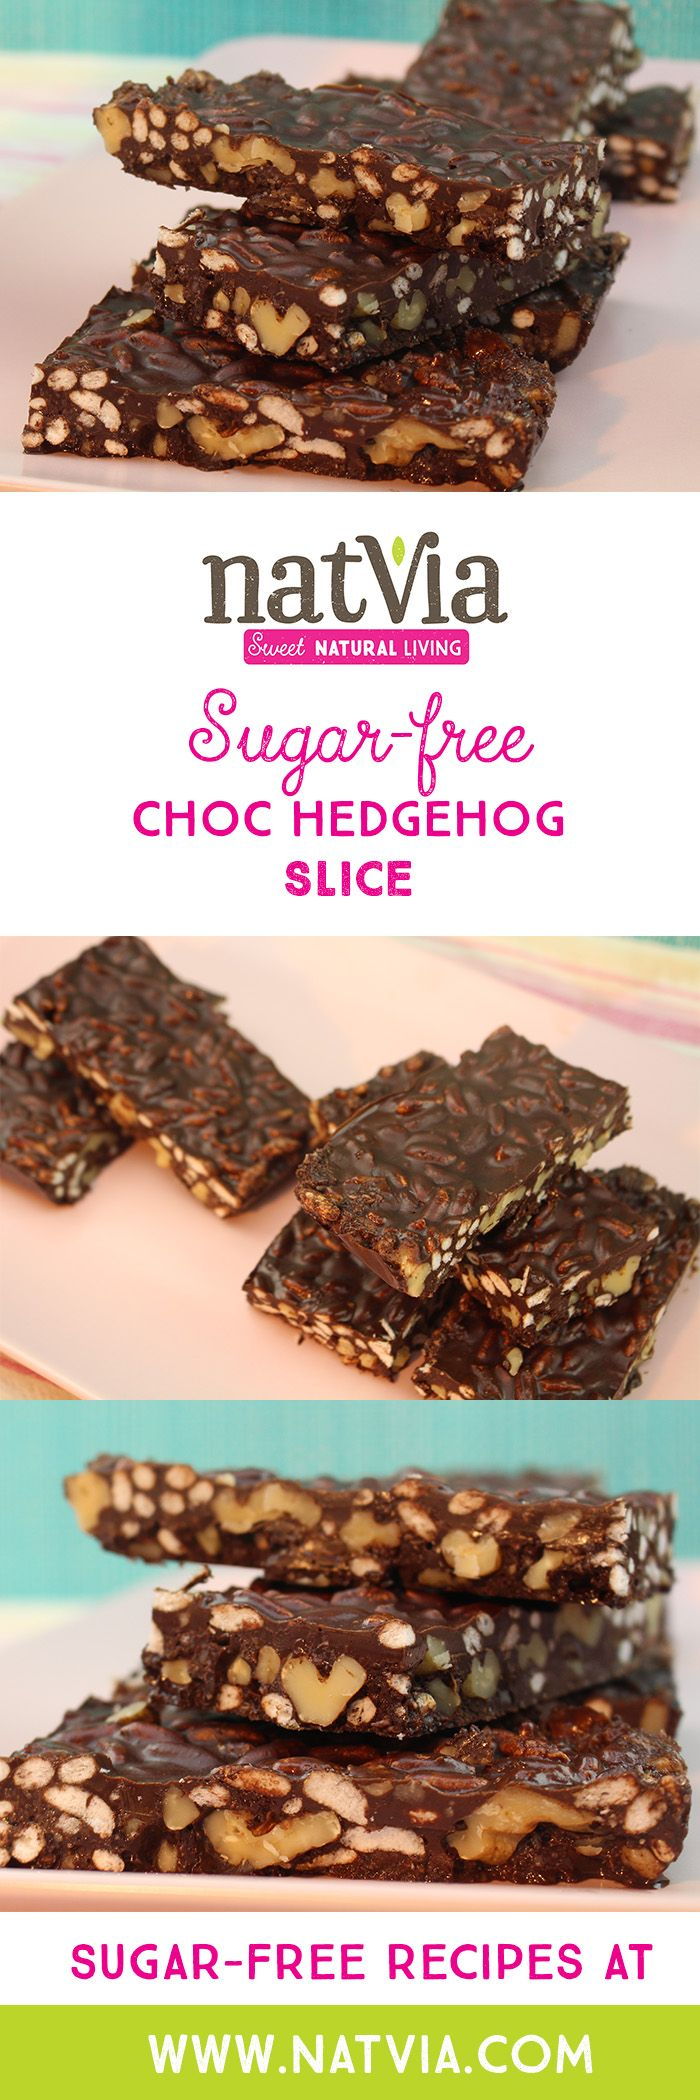 A classic #chocolate hedgehog #slice made #sugarfree, but wait, it is also #vegan! Yes indeed another sugar free vegan #recipe from #Natvia.